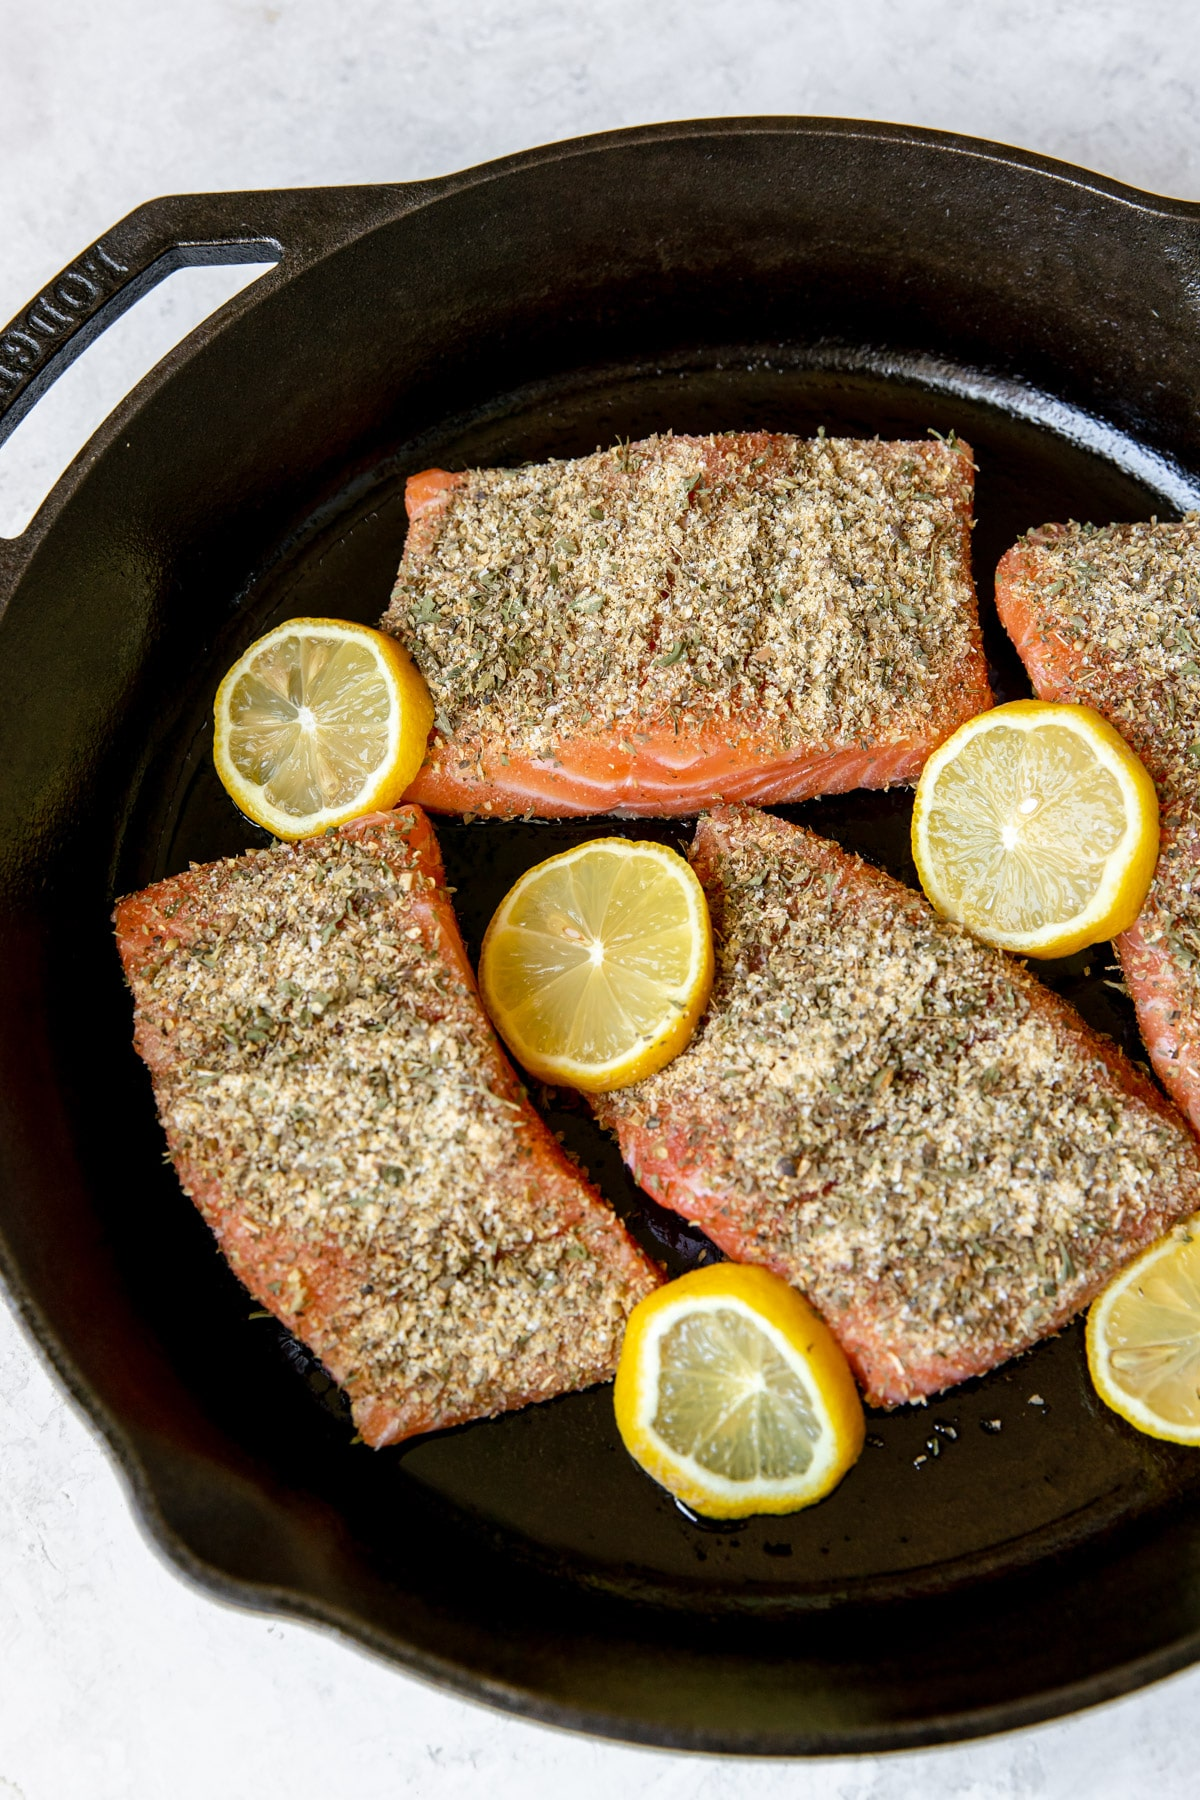 fresh salmon fillets in a cast iron skillet with lemon slices